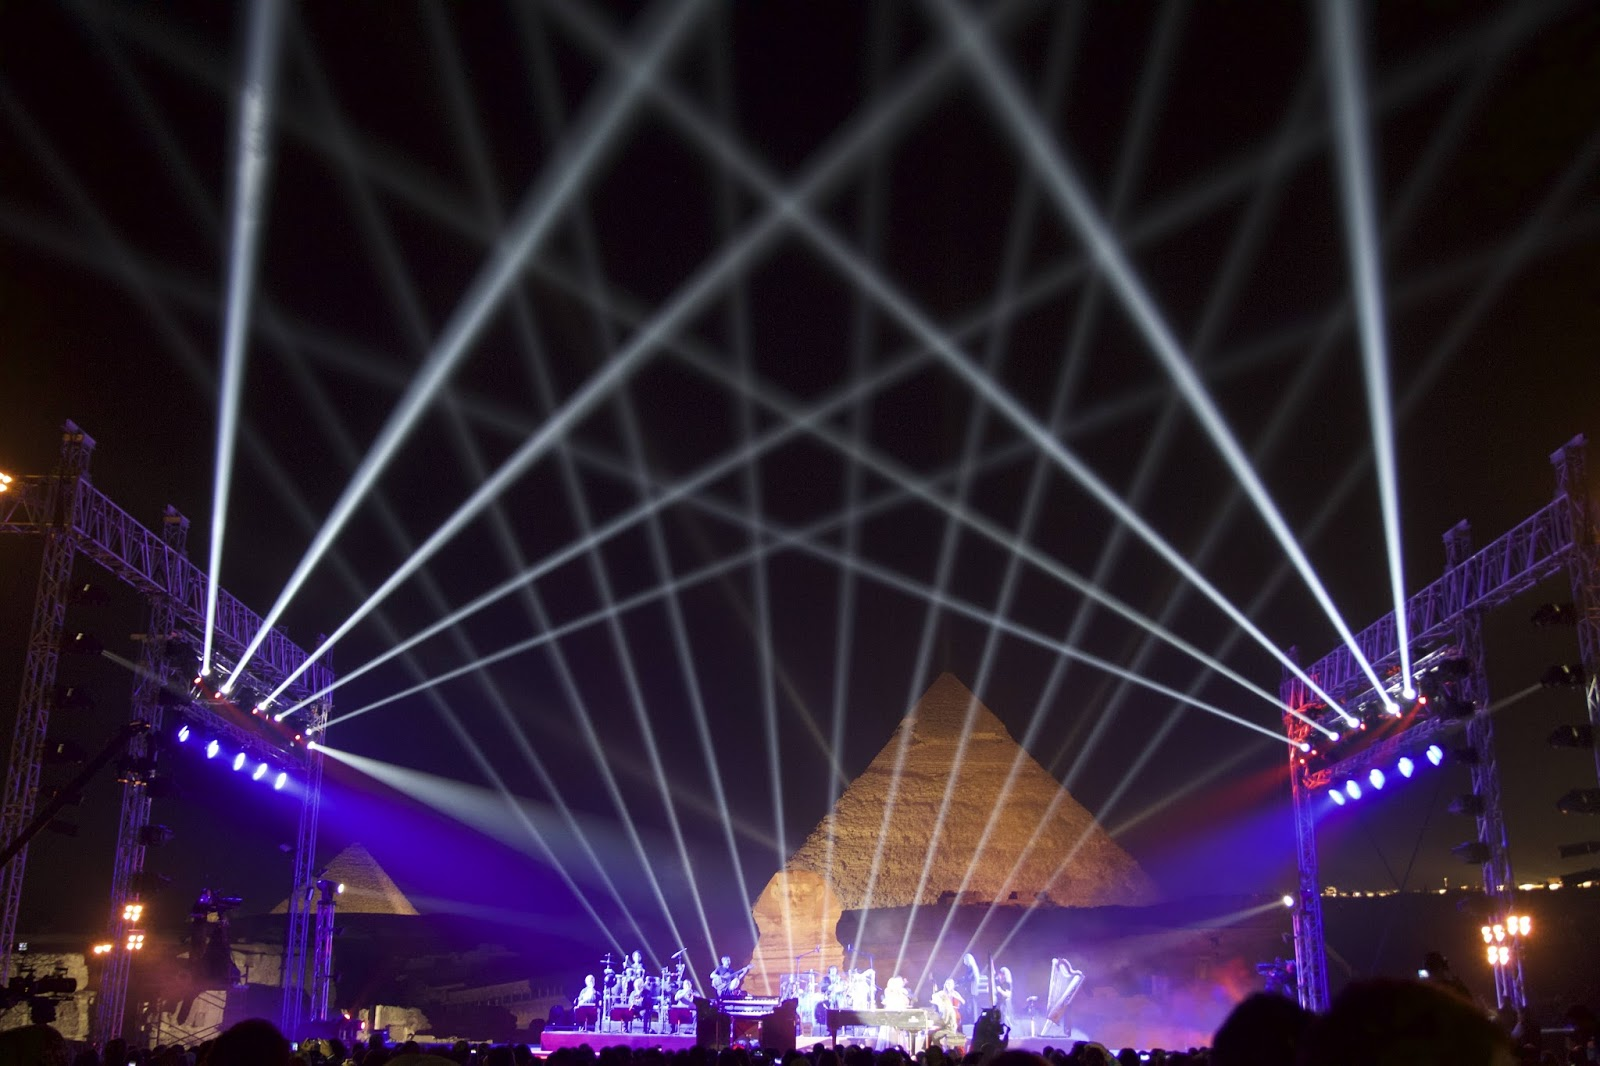 Harmans martin lighting fixtures shine on yanni at the great harmans martin lighting fixtures shine on yanni at the great pyramids of egypt arubaitofo Images